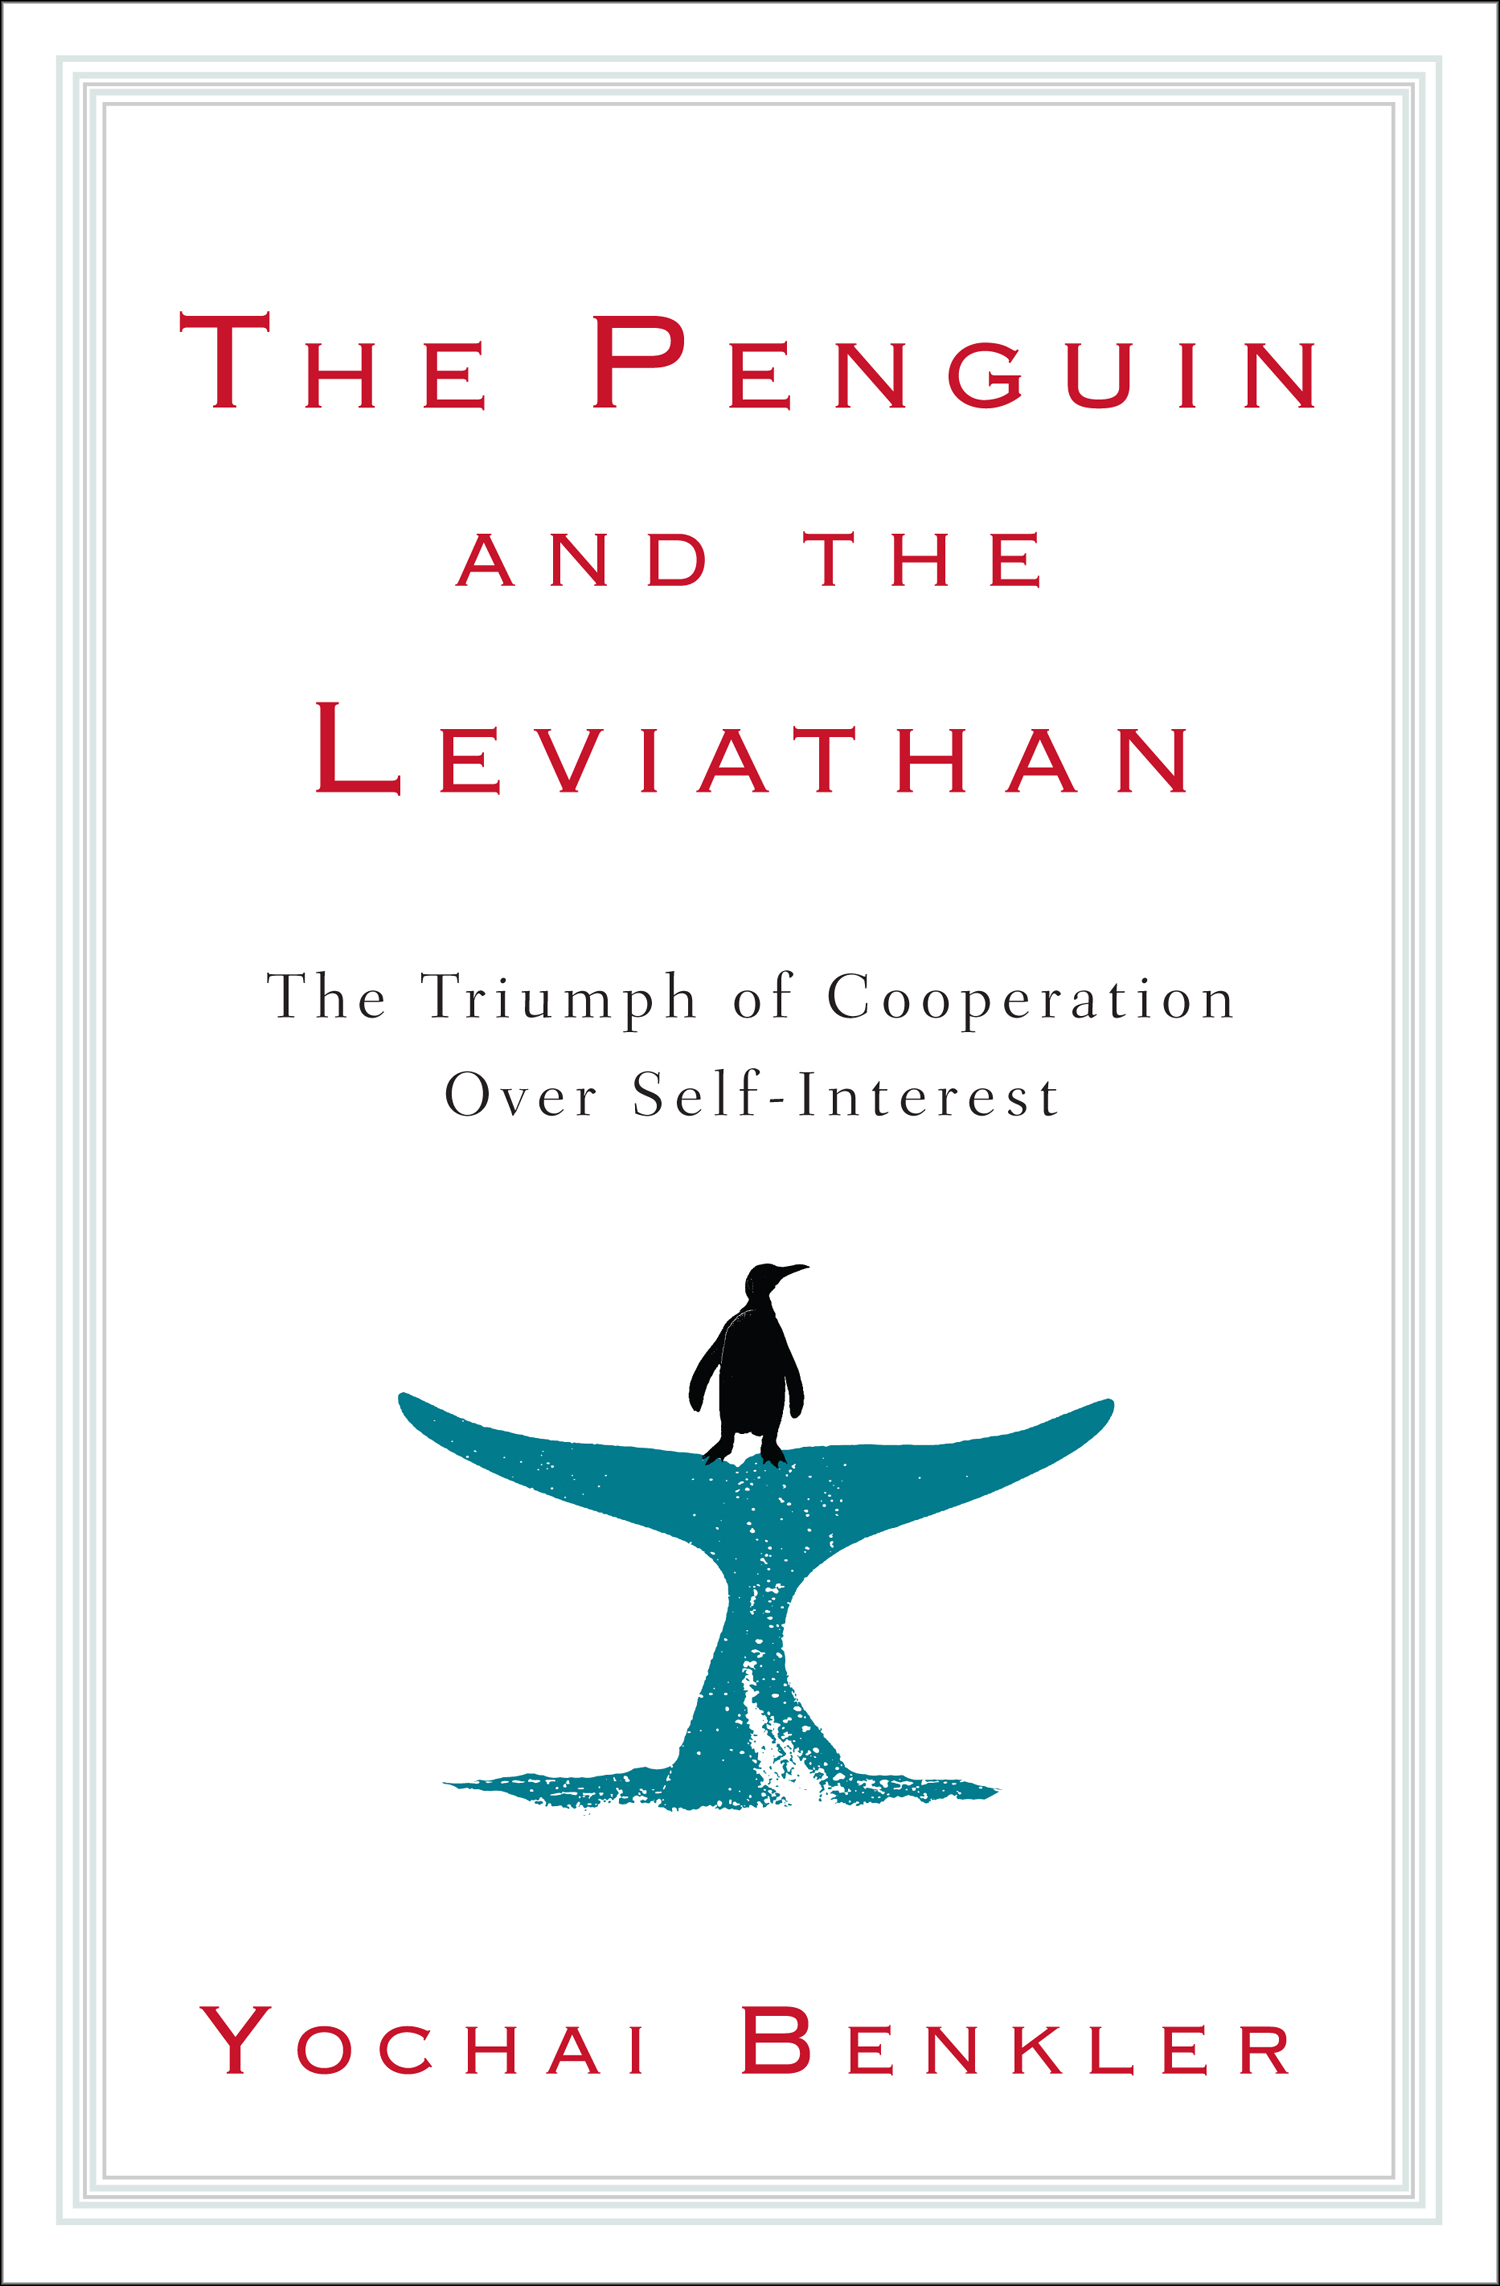 THE-PENGUIN-AND-THE-LEVIATHAN-comp2-ss6.jpg